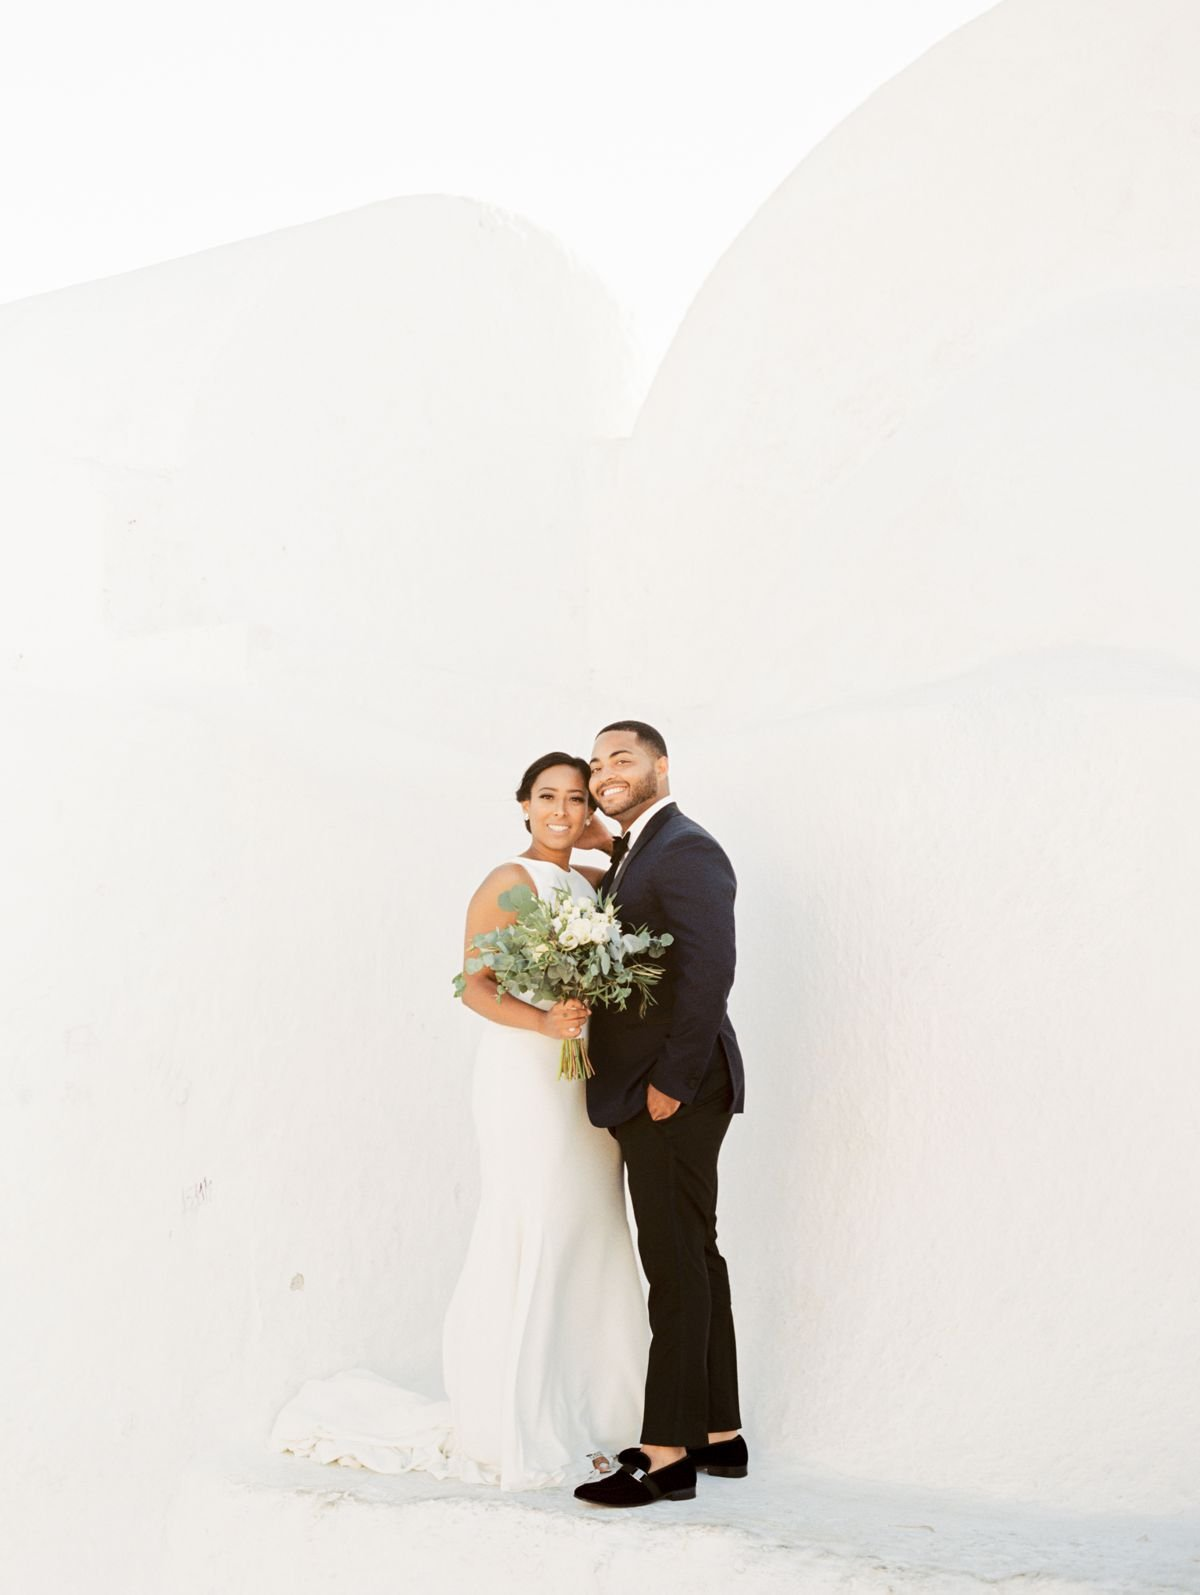 Portrait of bride and groom at Canaves Oia, Santorini